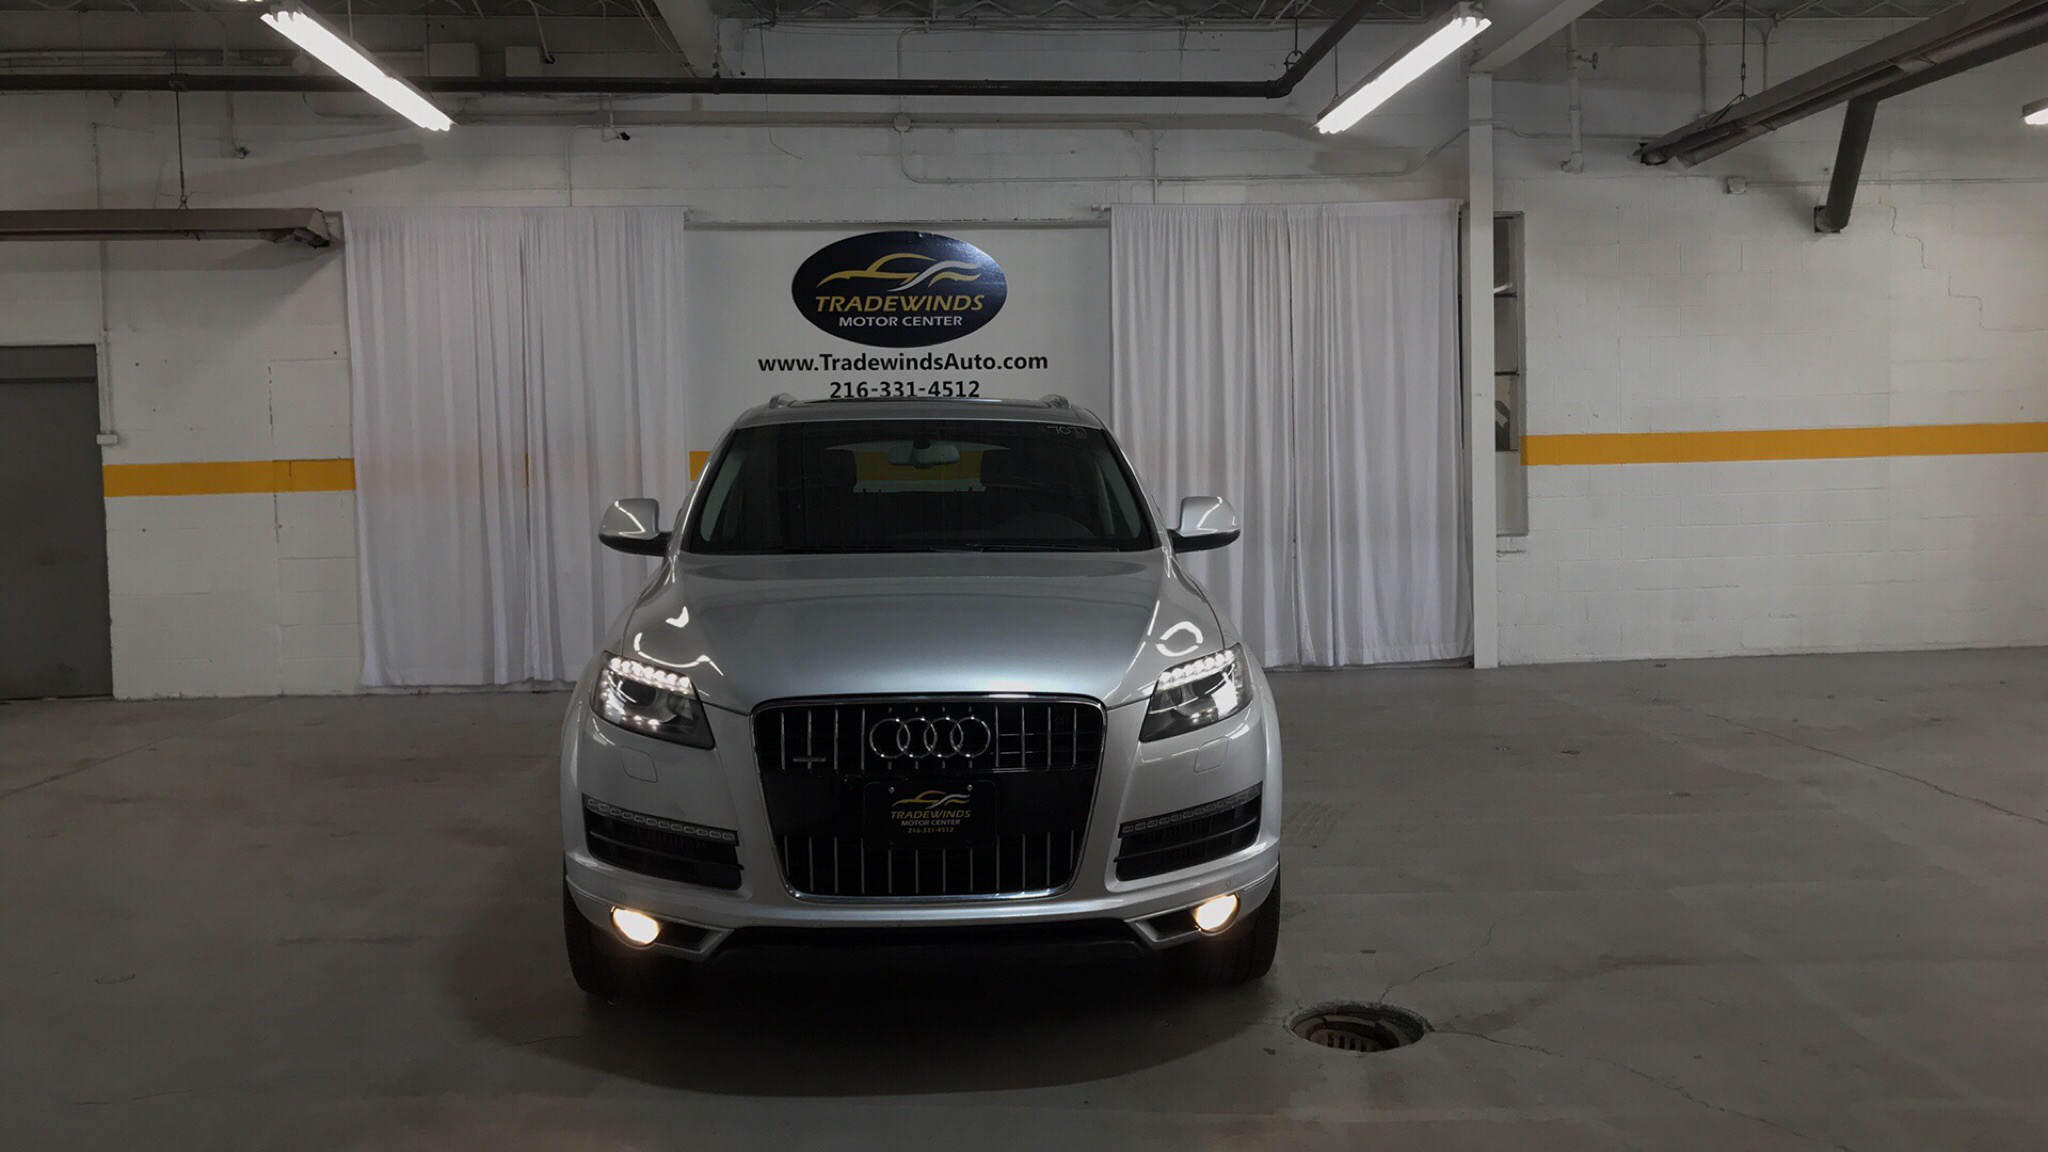 2010 AUDI Q7 PREMIUM PLUS for sale at Tradewinds Motor Center